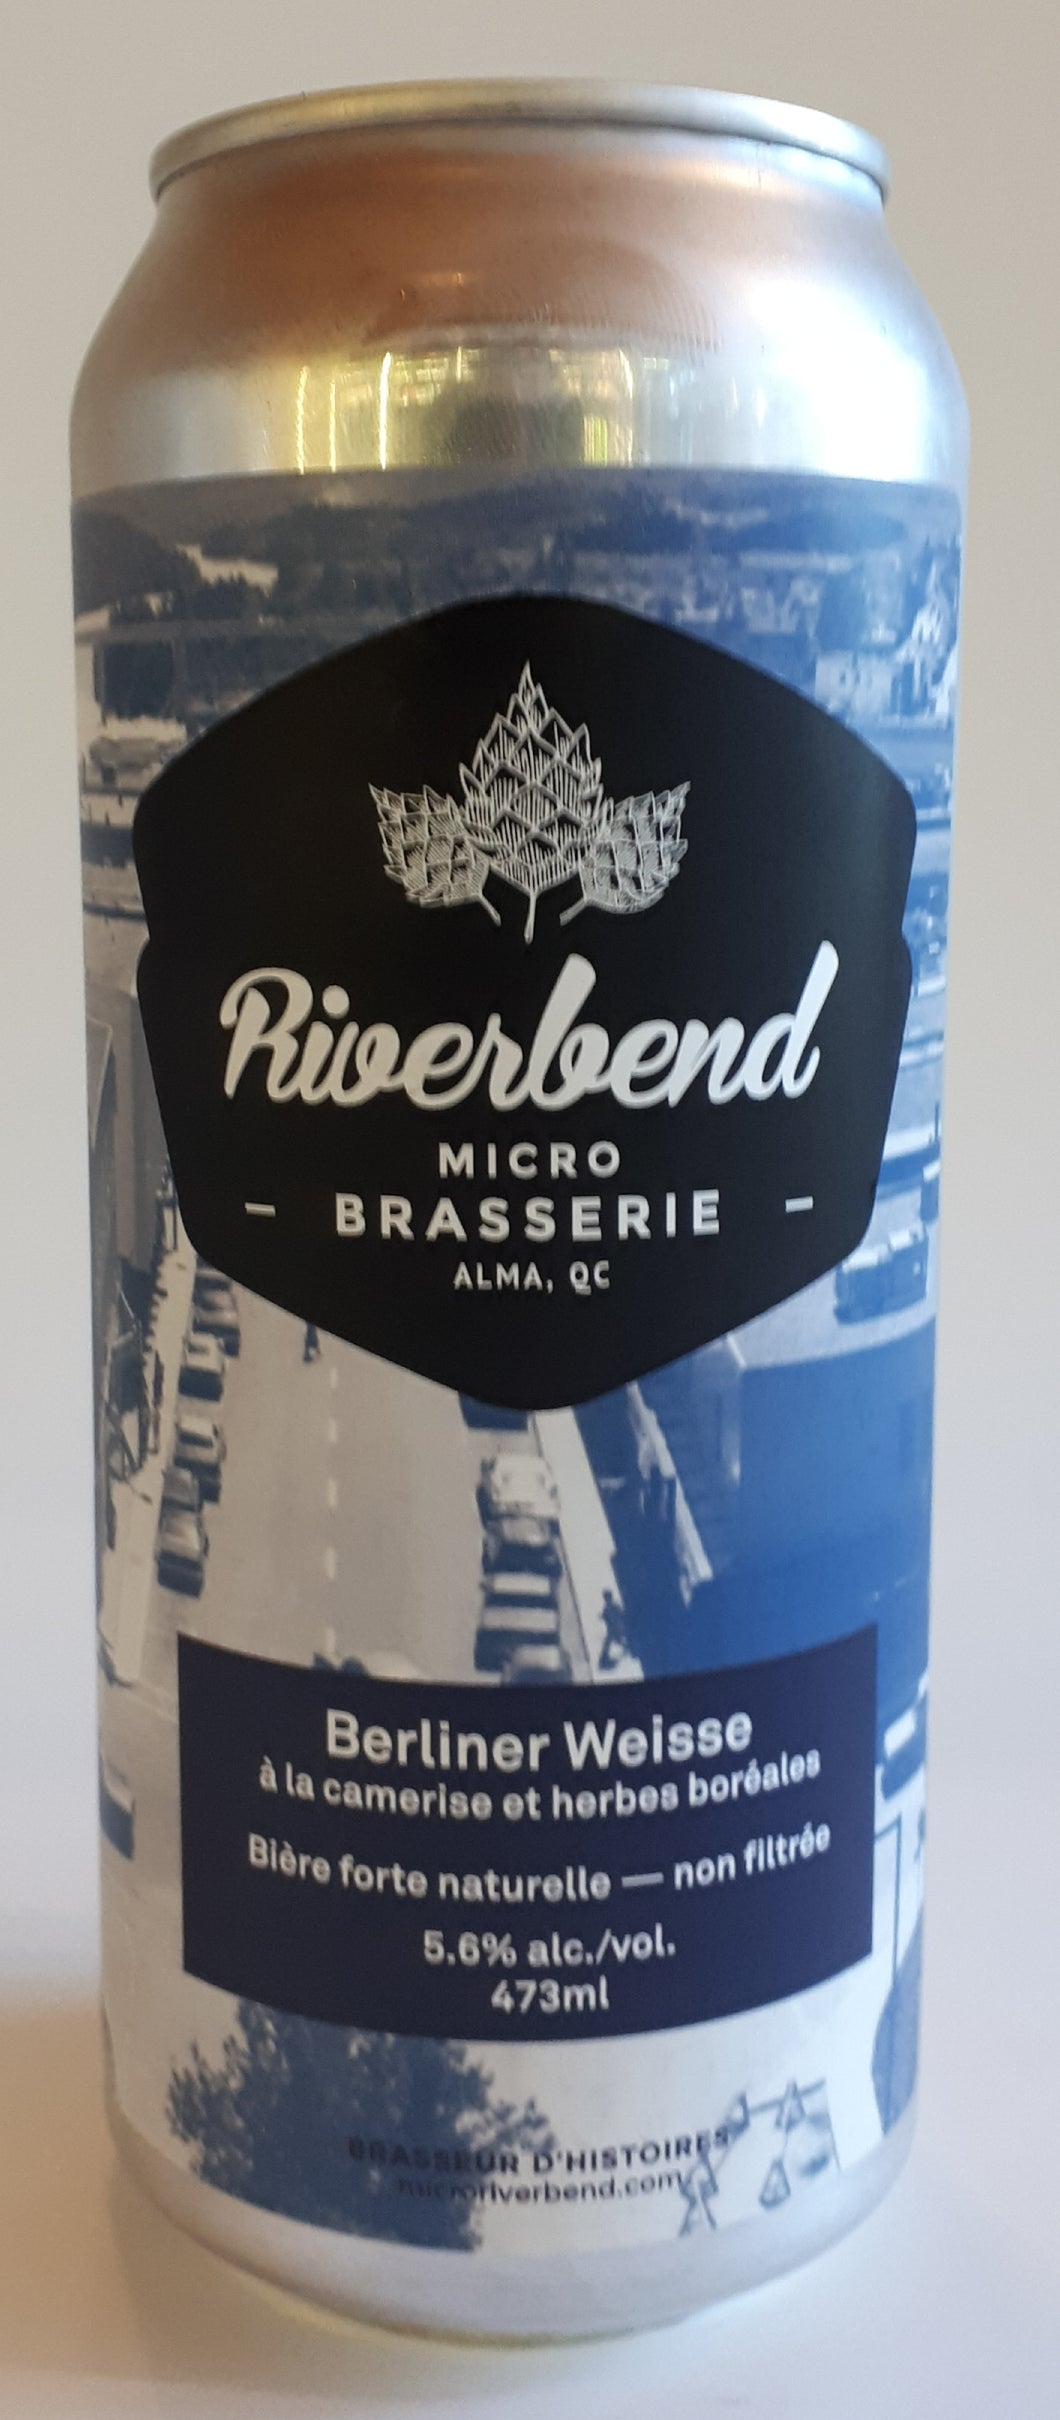 Microbrasserie Riverbend Berliner Camerise 473ml